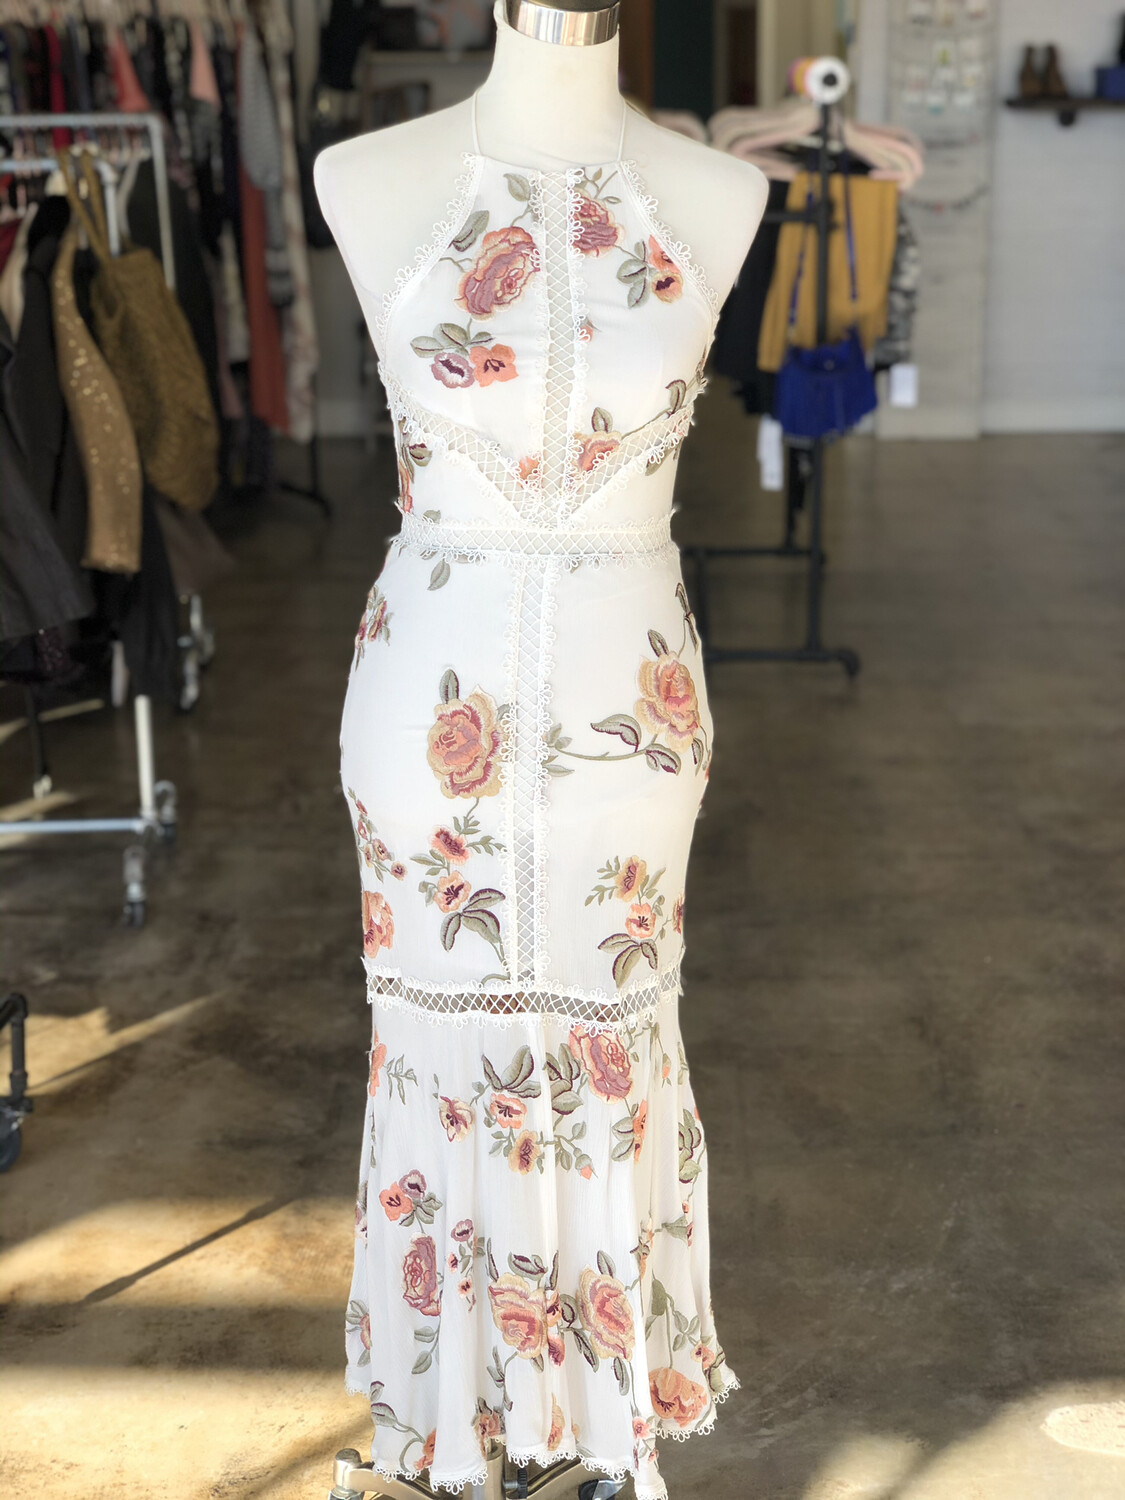 X By NBD White Embroidered Floral Corset Midi Dress - XS